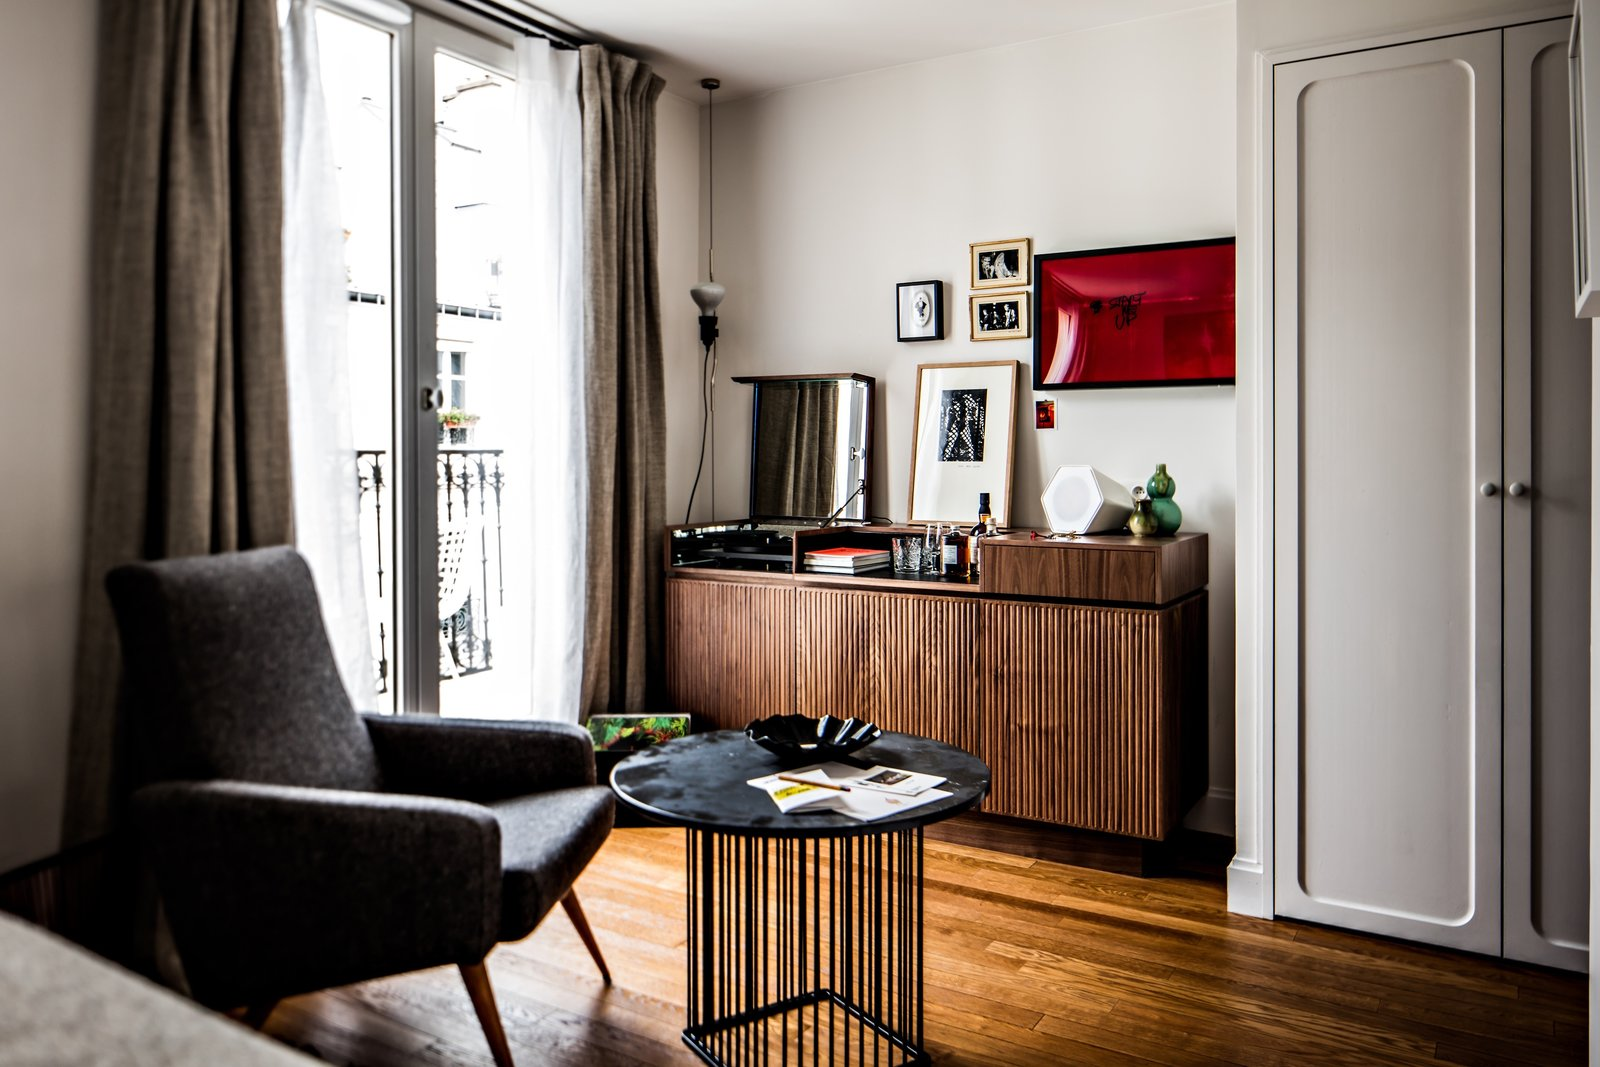 Pigalle 21, a mid-size room in the hotel, showcases unique pieces selected by designer furniture specialist, Alexandre Guillemain.  Photo 3 of 8 in Collaboration Reigns  Over This Parisian Neighborhood Hotel